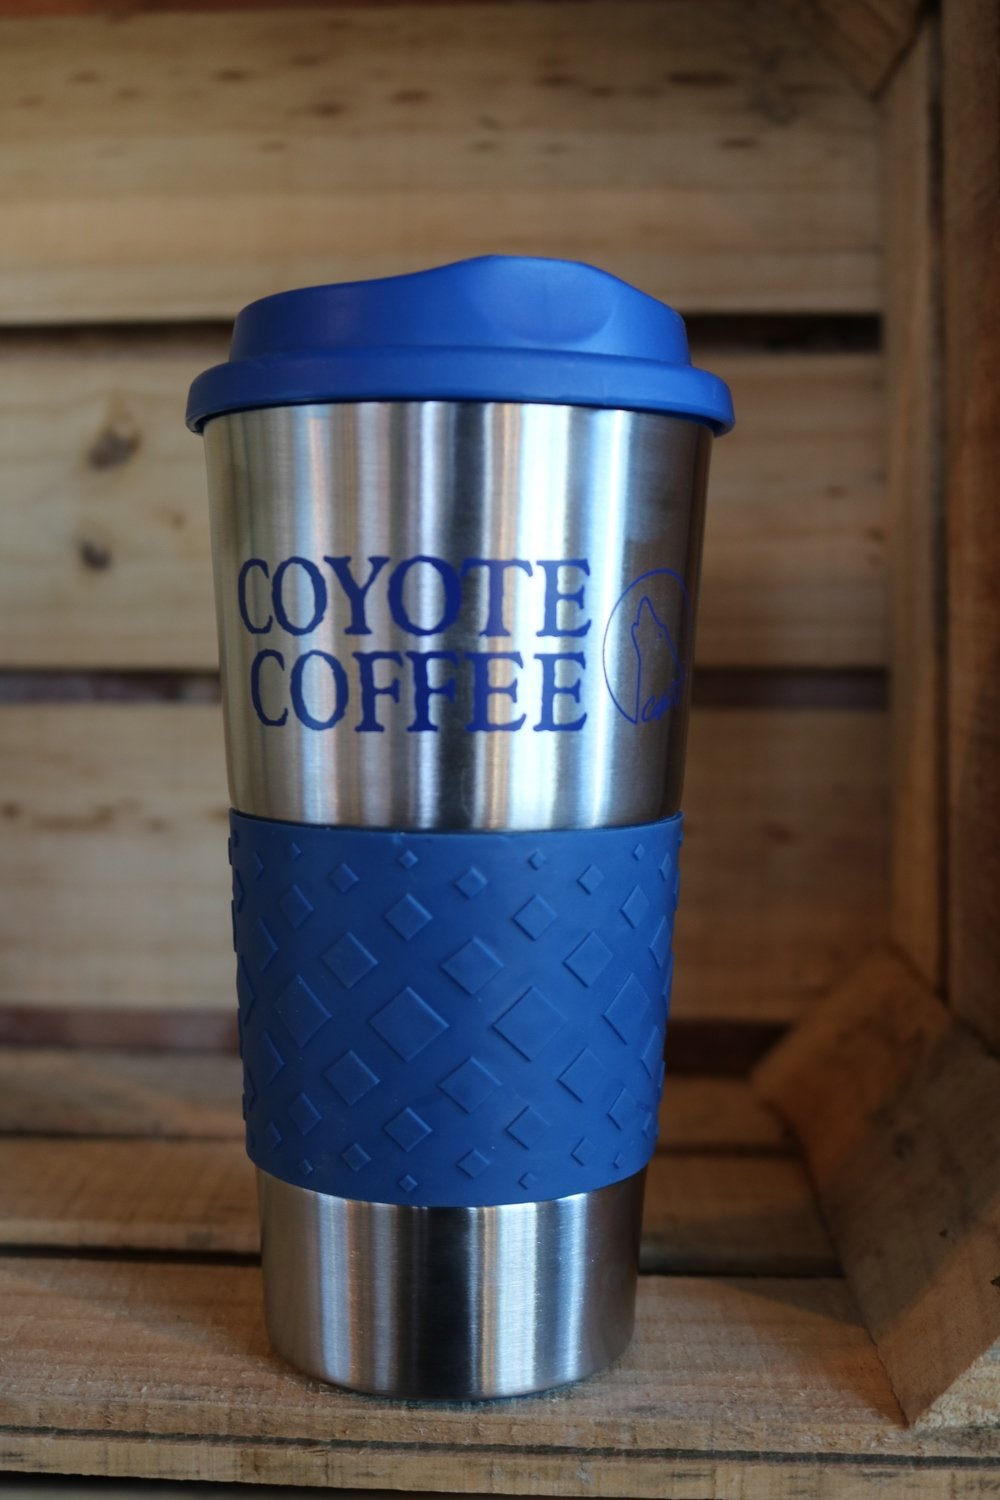 Coyote Coffee Blue and Silver Tumbler